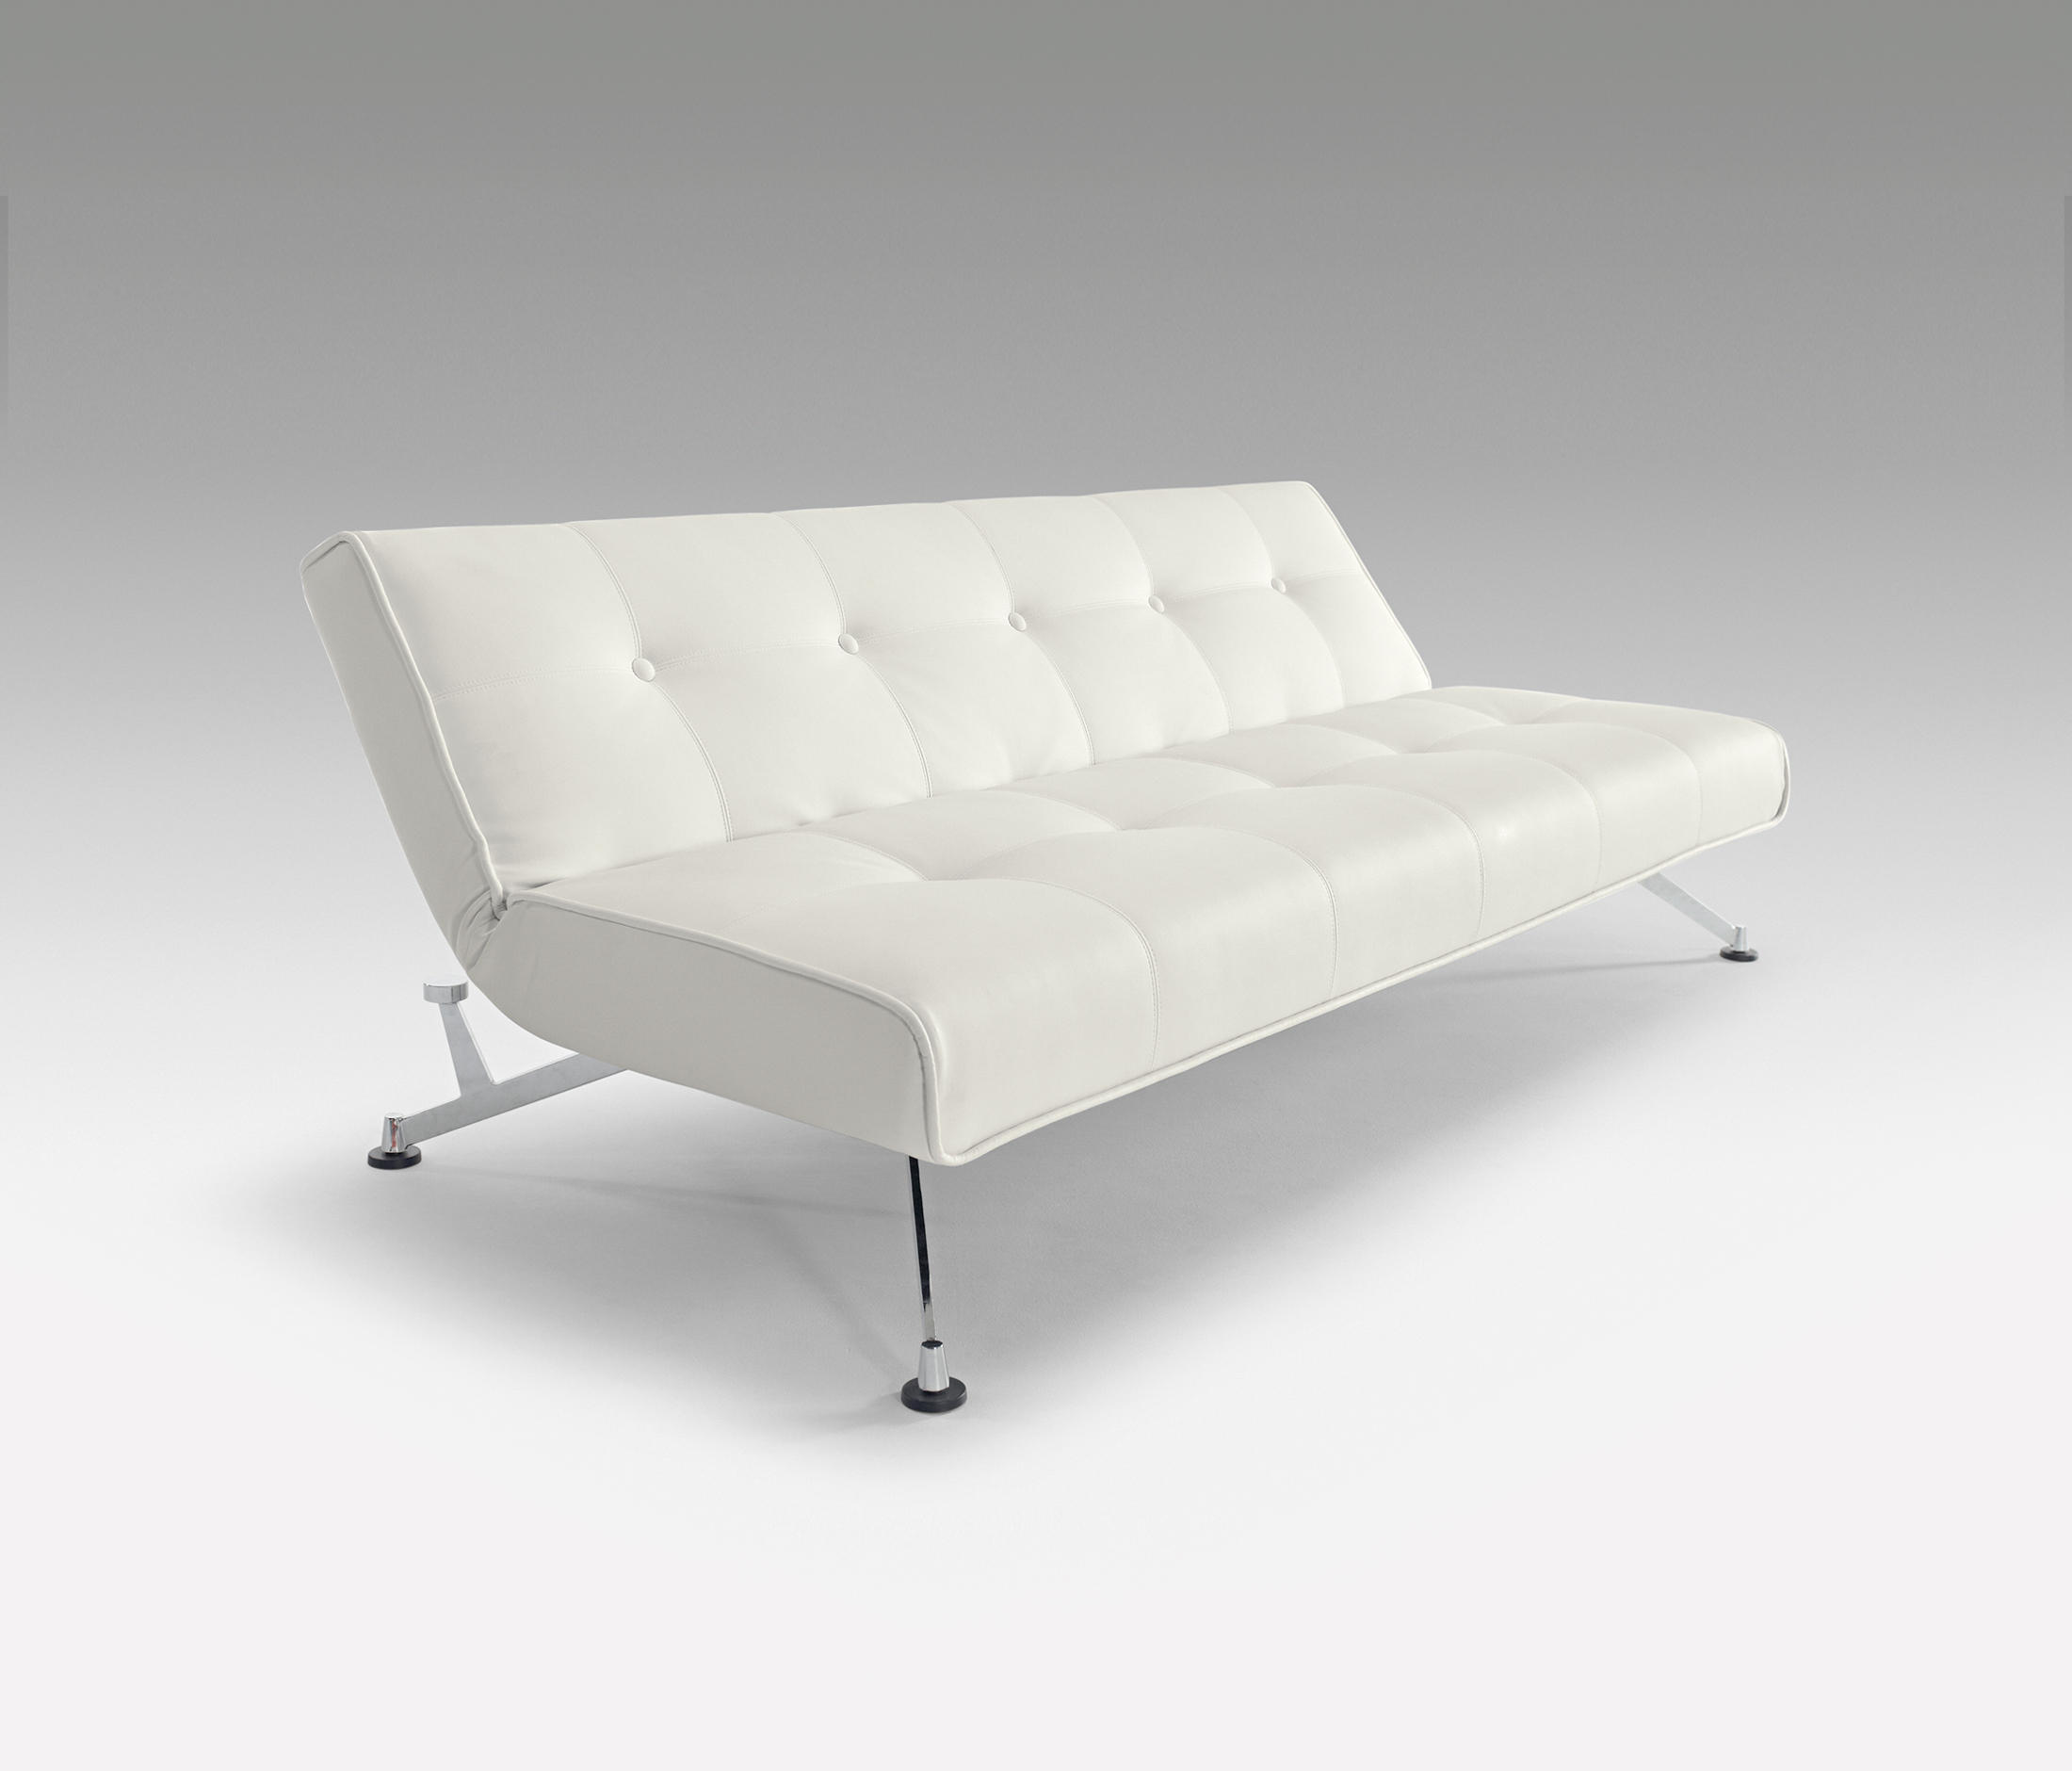 clubber sofa 03 ohne armlehnen schlafsofas von innovation randers architonic. Black Bedroom Furniture Sets. Home Design Ideas